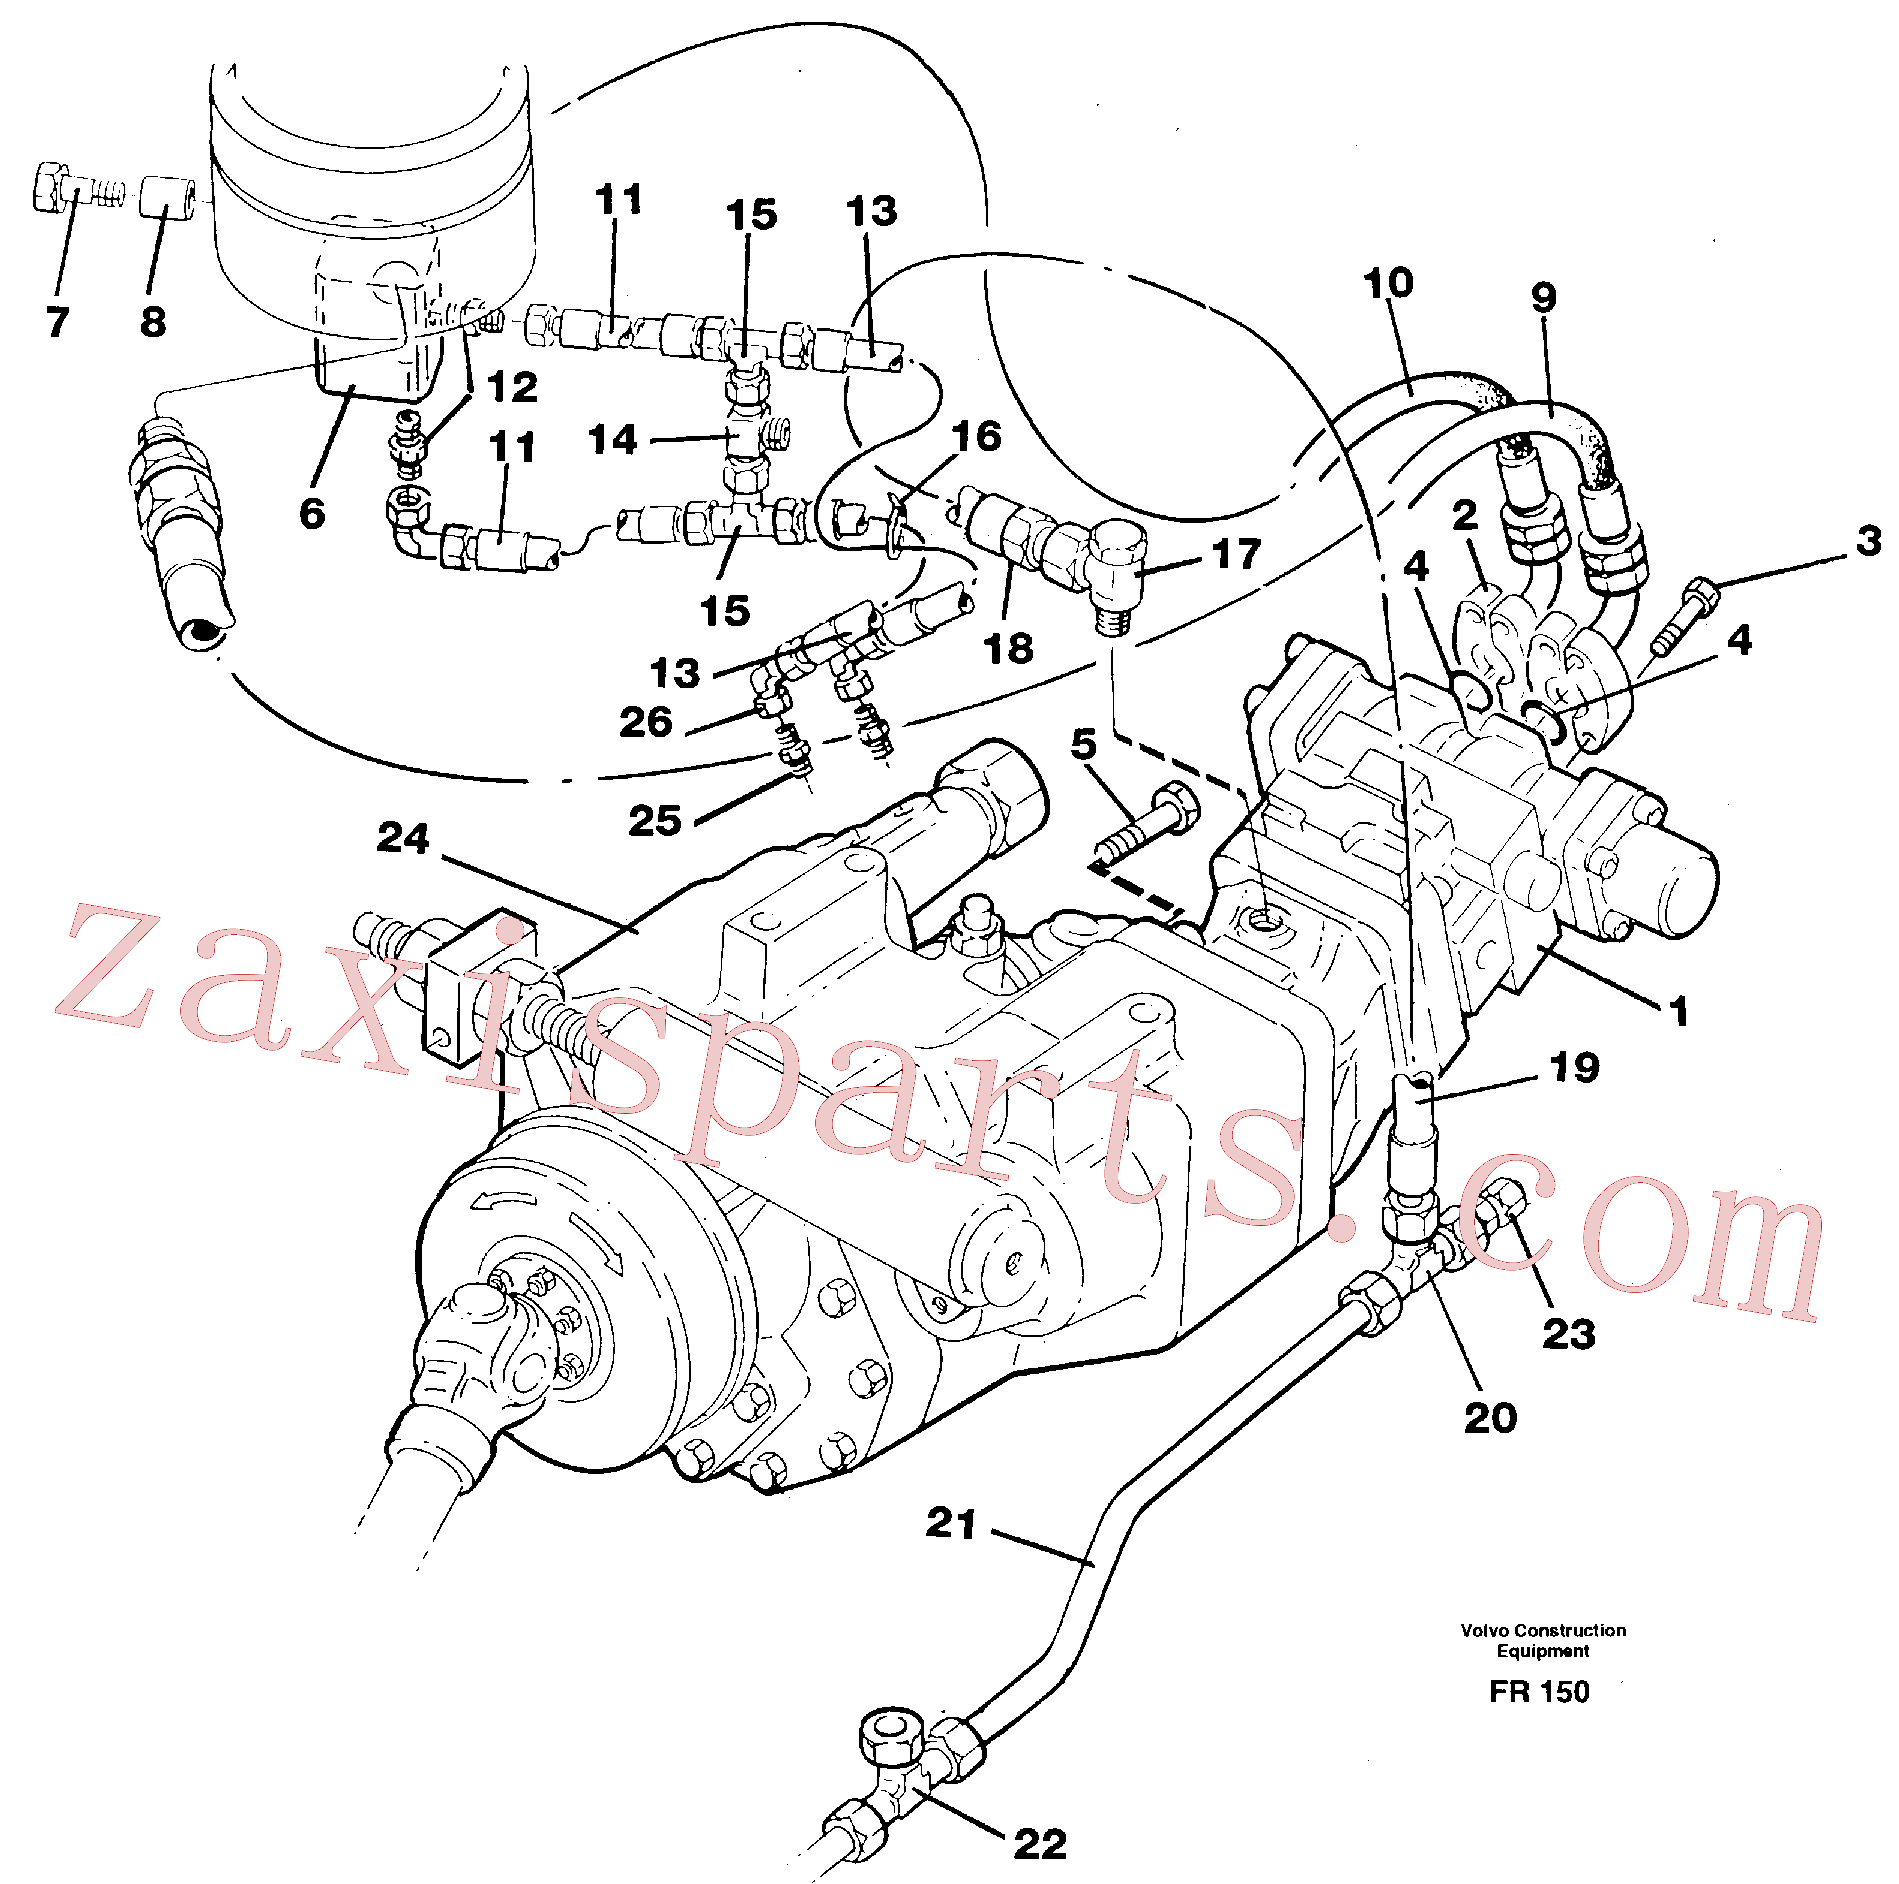 VOE14251026 for Volvo Hydraulic system, transport in undercarrige(FR150 assembly)